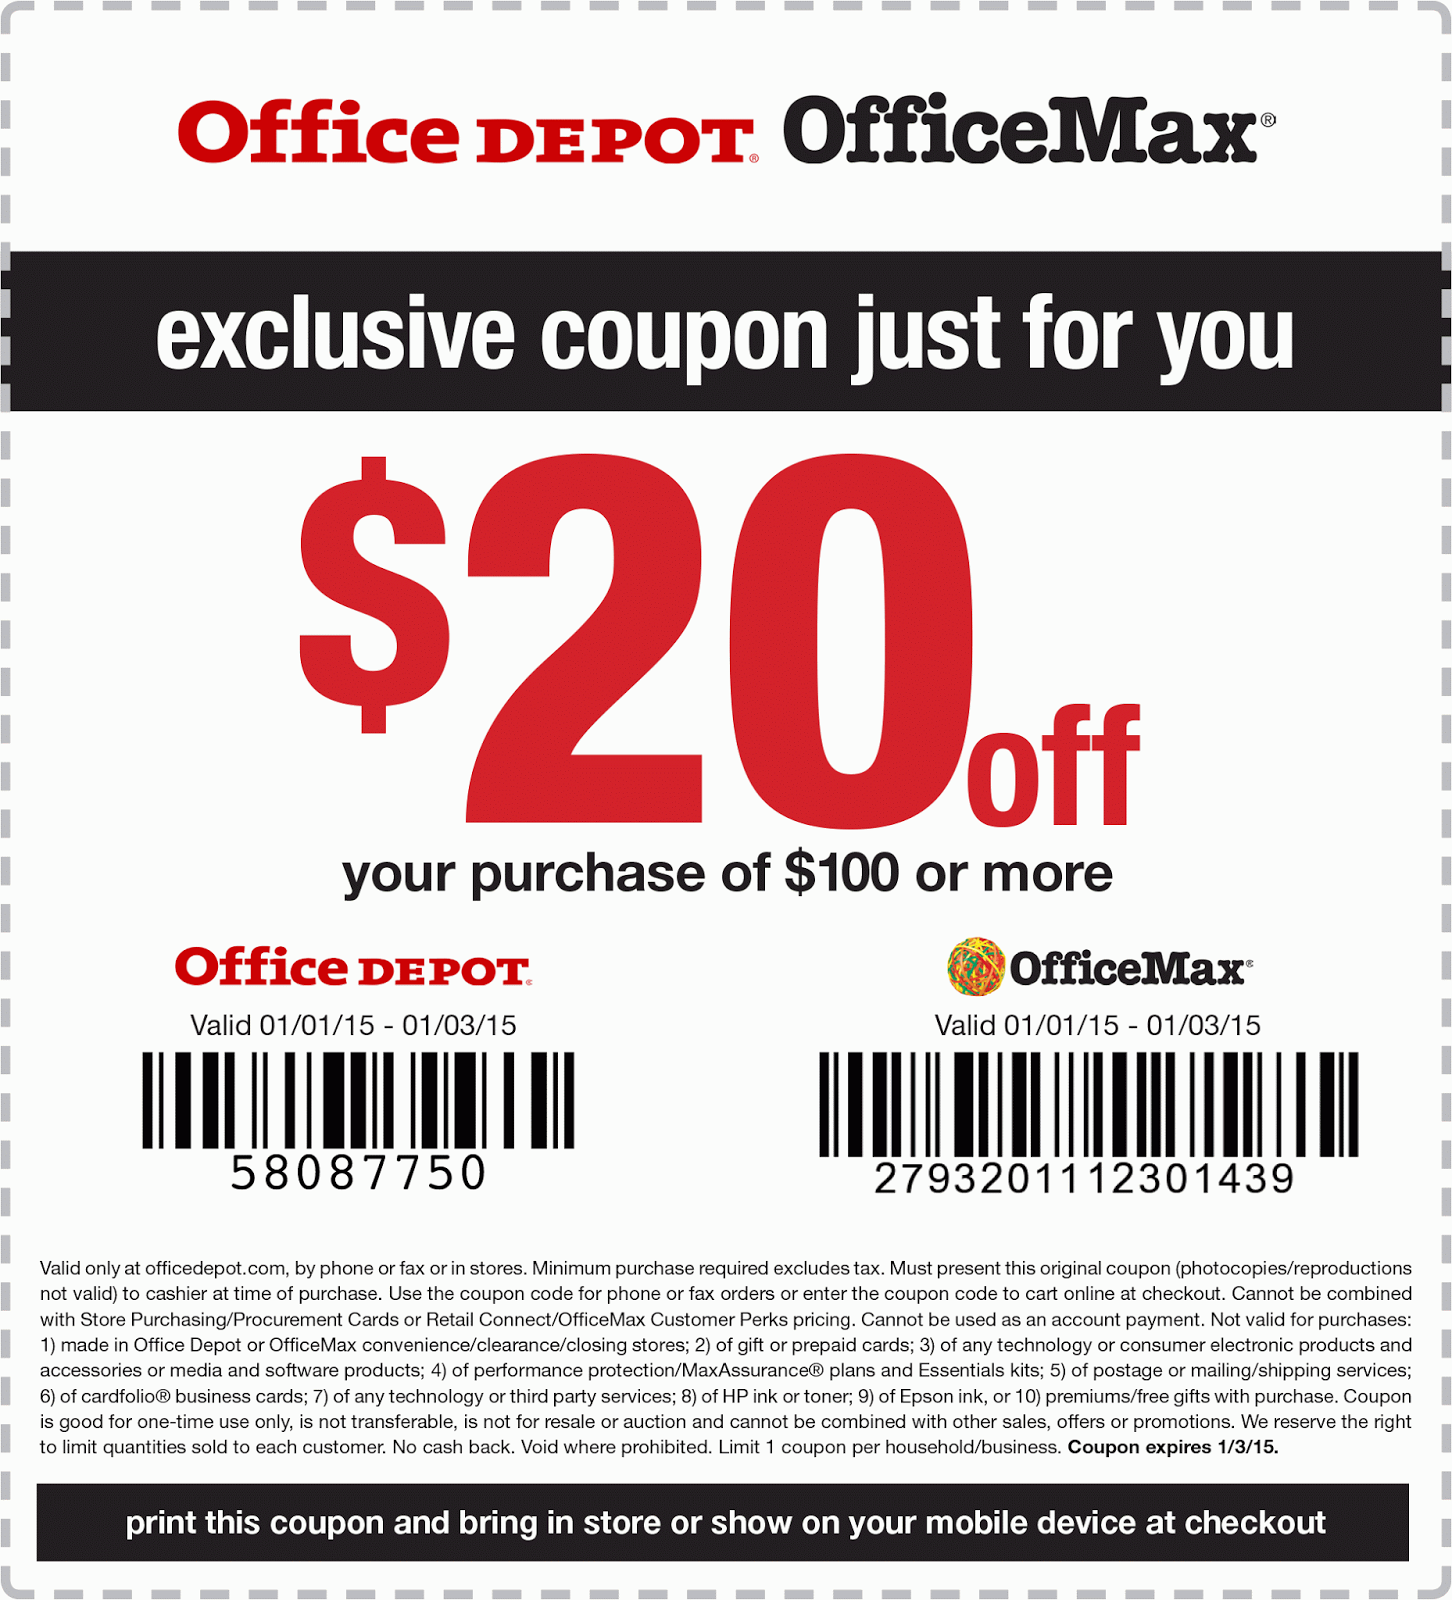 Office Depot and Office Max have merged into one company to bring shoppers low prices on office supplies, paper, ink & toner, technology, office furniture and more. Save up to 30% off your order with today's factorshuf.tk coupon codes and printable coupons.